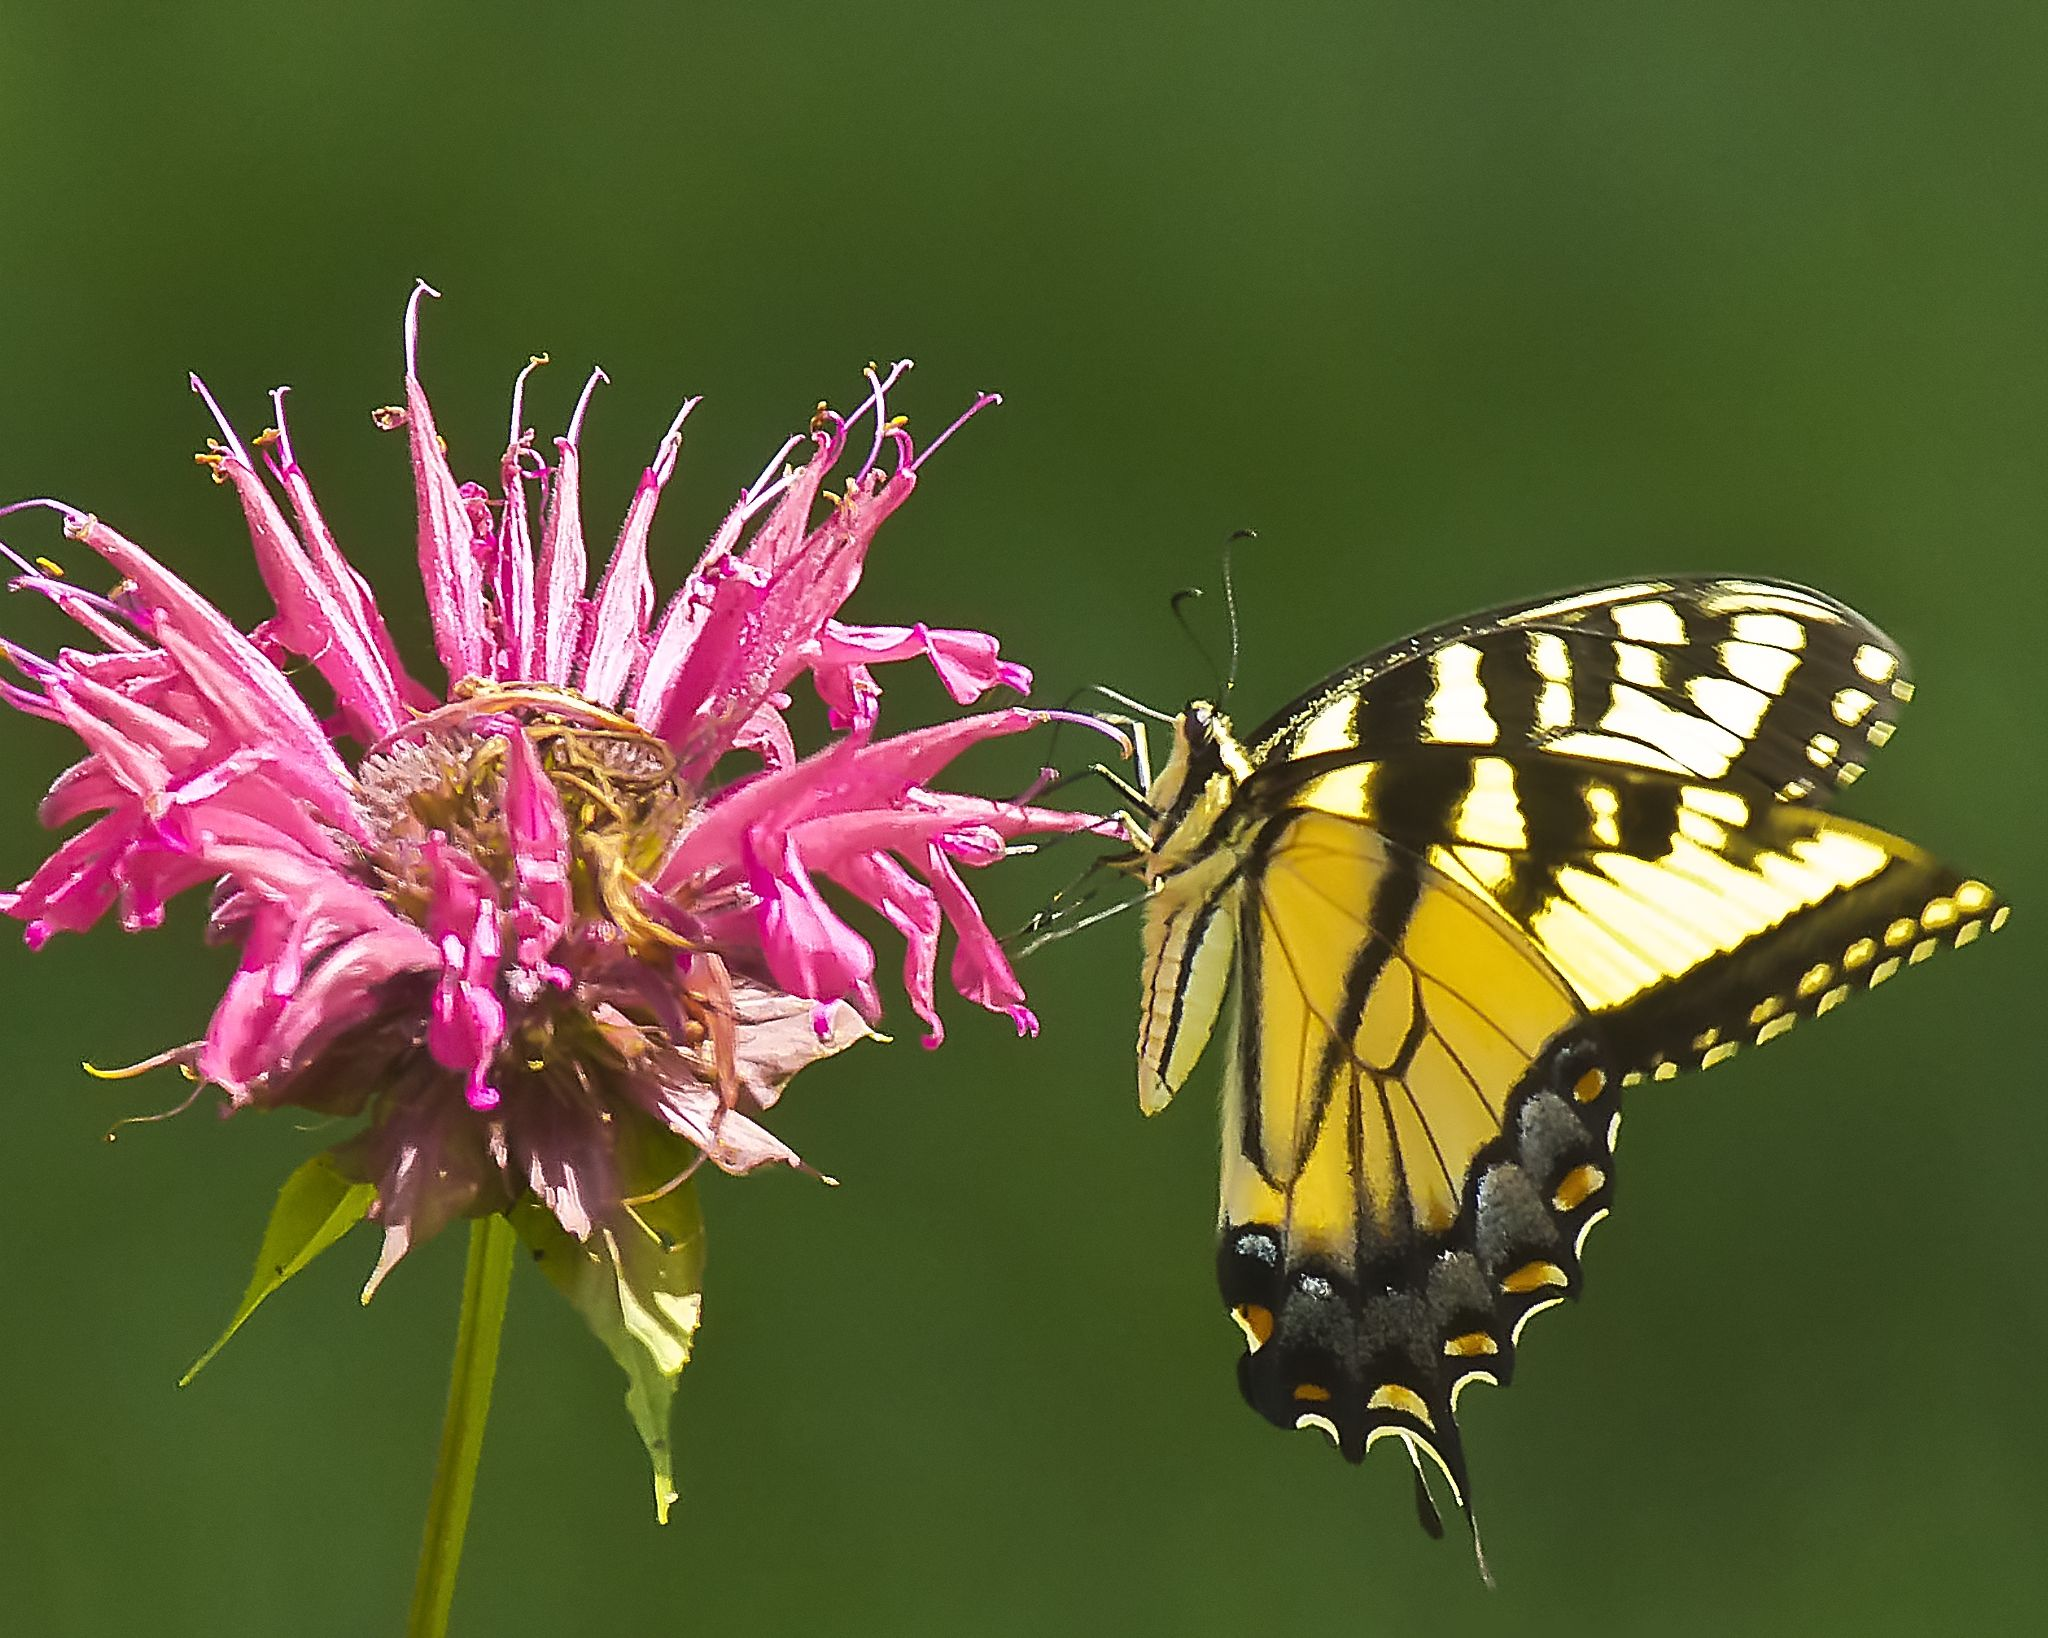 Tiger Swallowtail Butterfly by BadgerBob